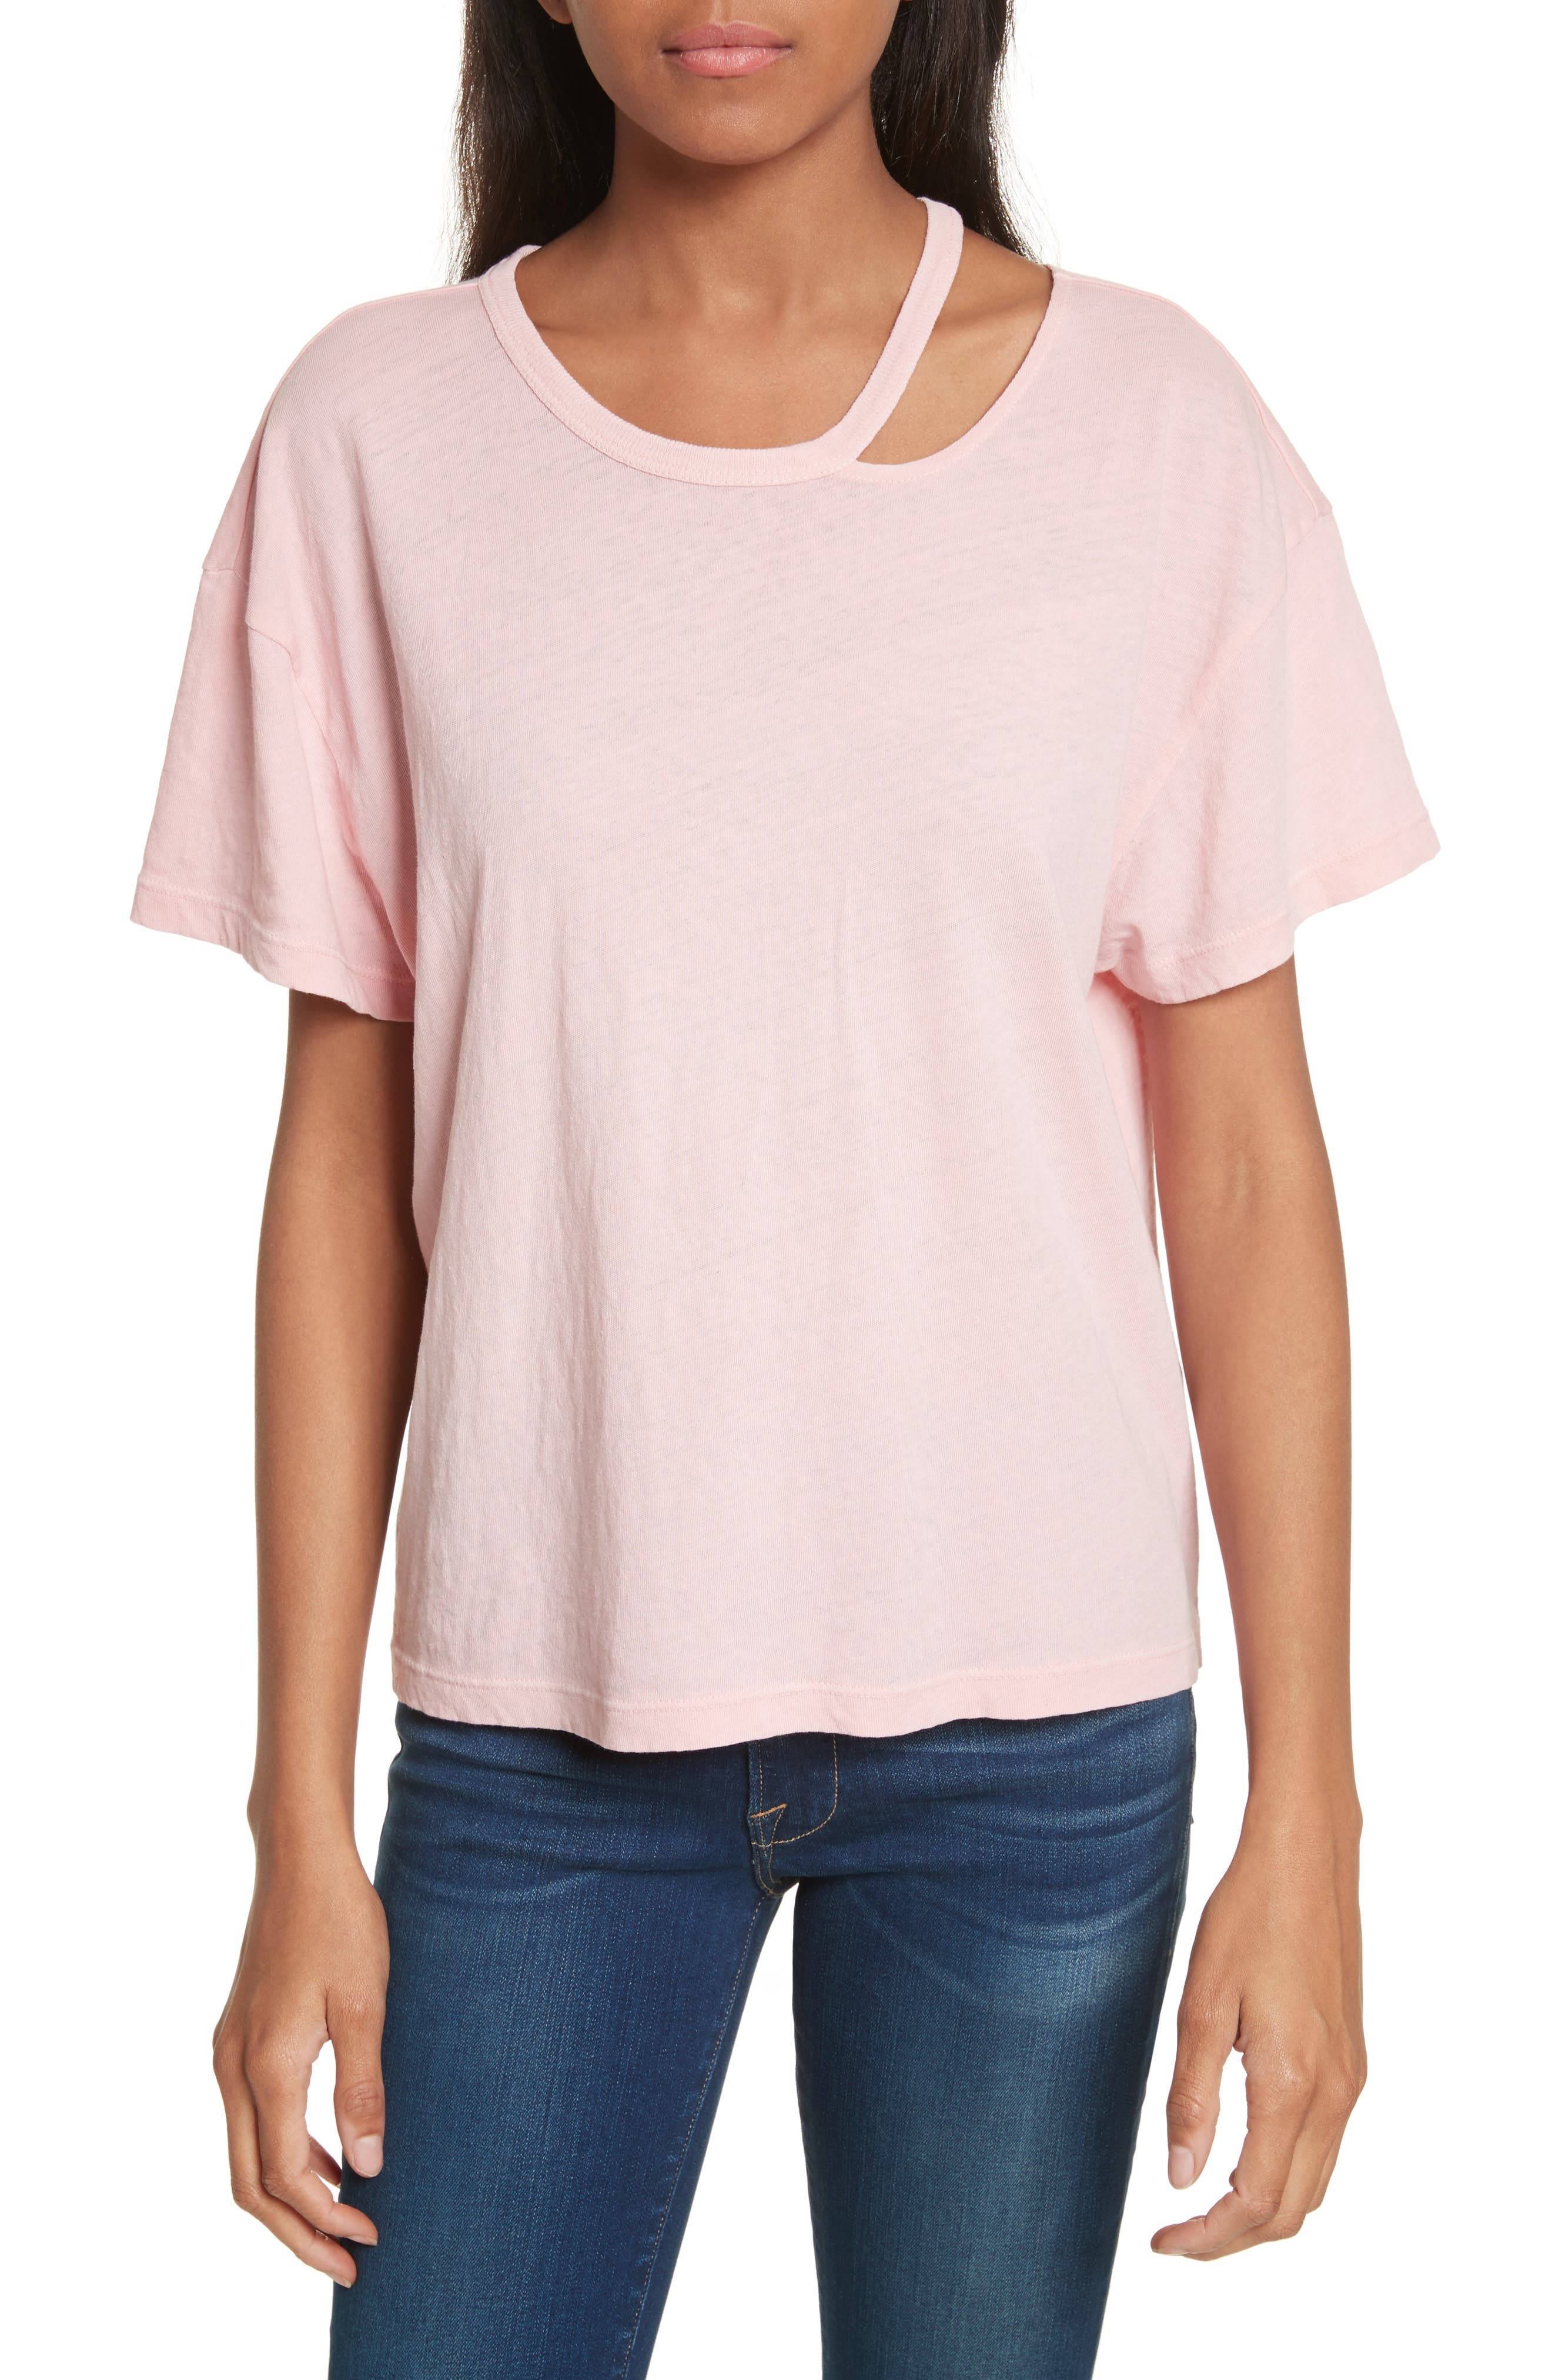 Chopped Crew Tee,                         Main,                         color, Faded Light Pink Exclusive